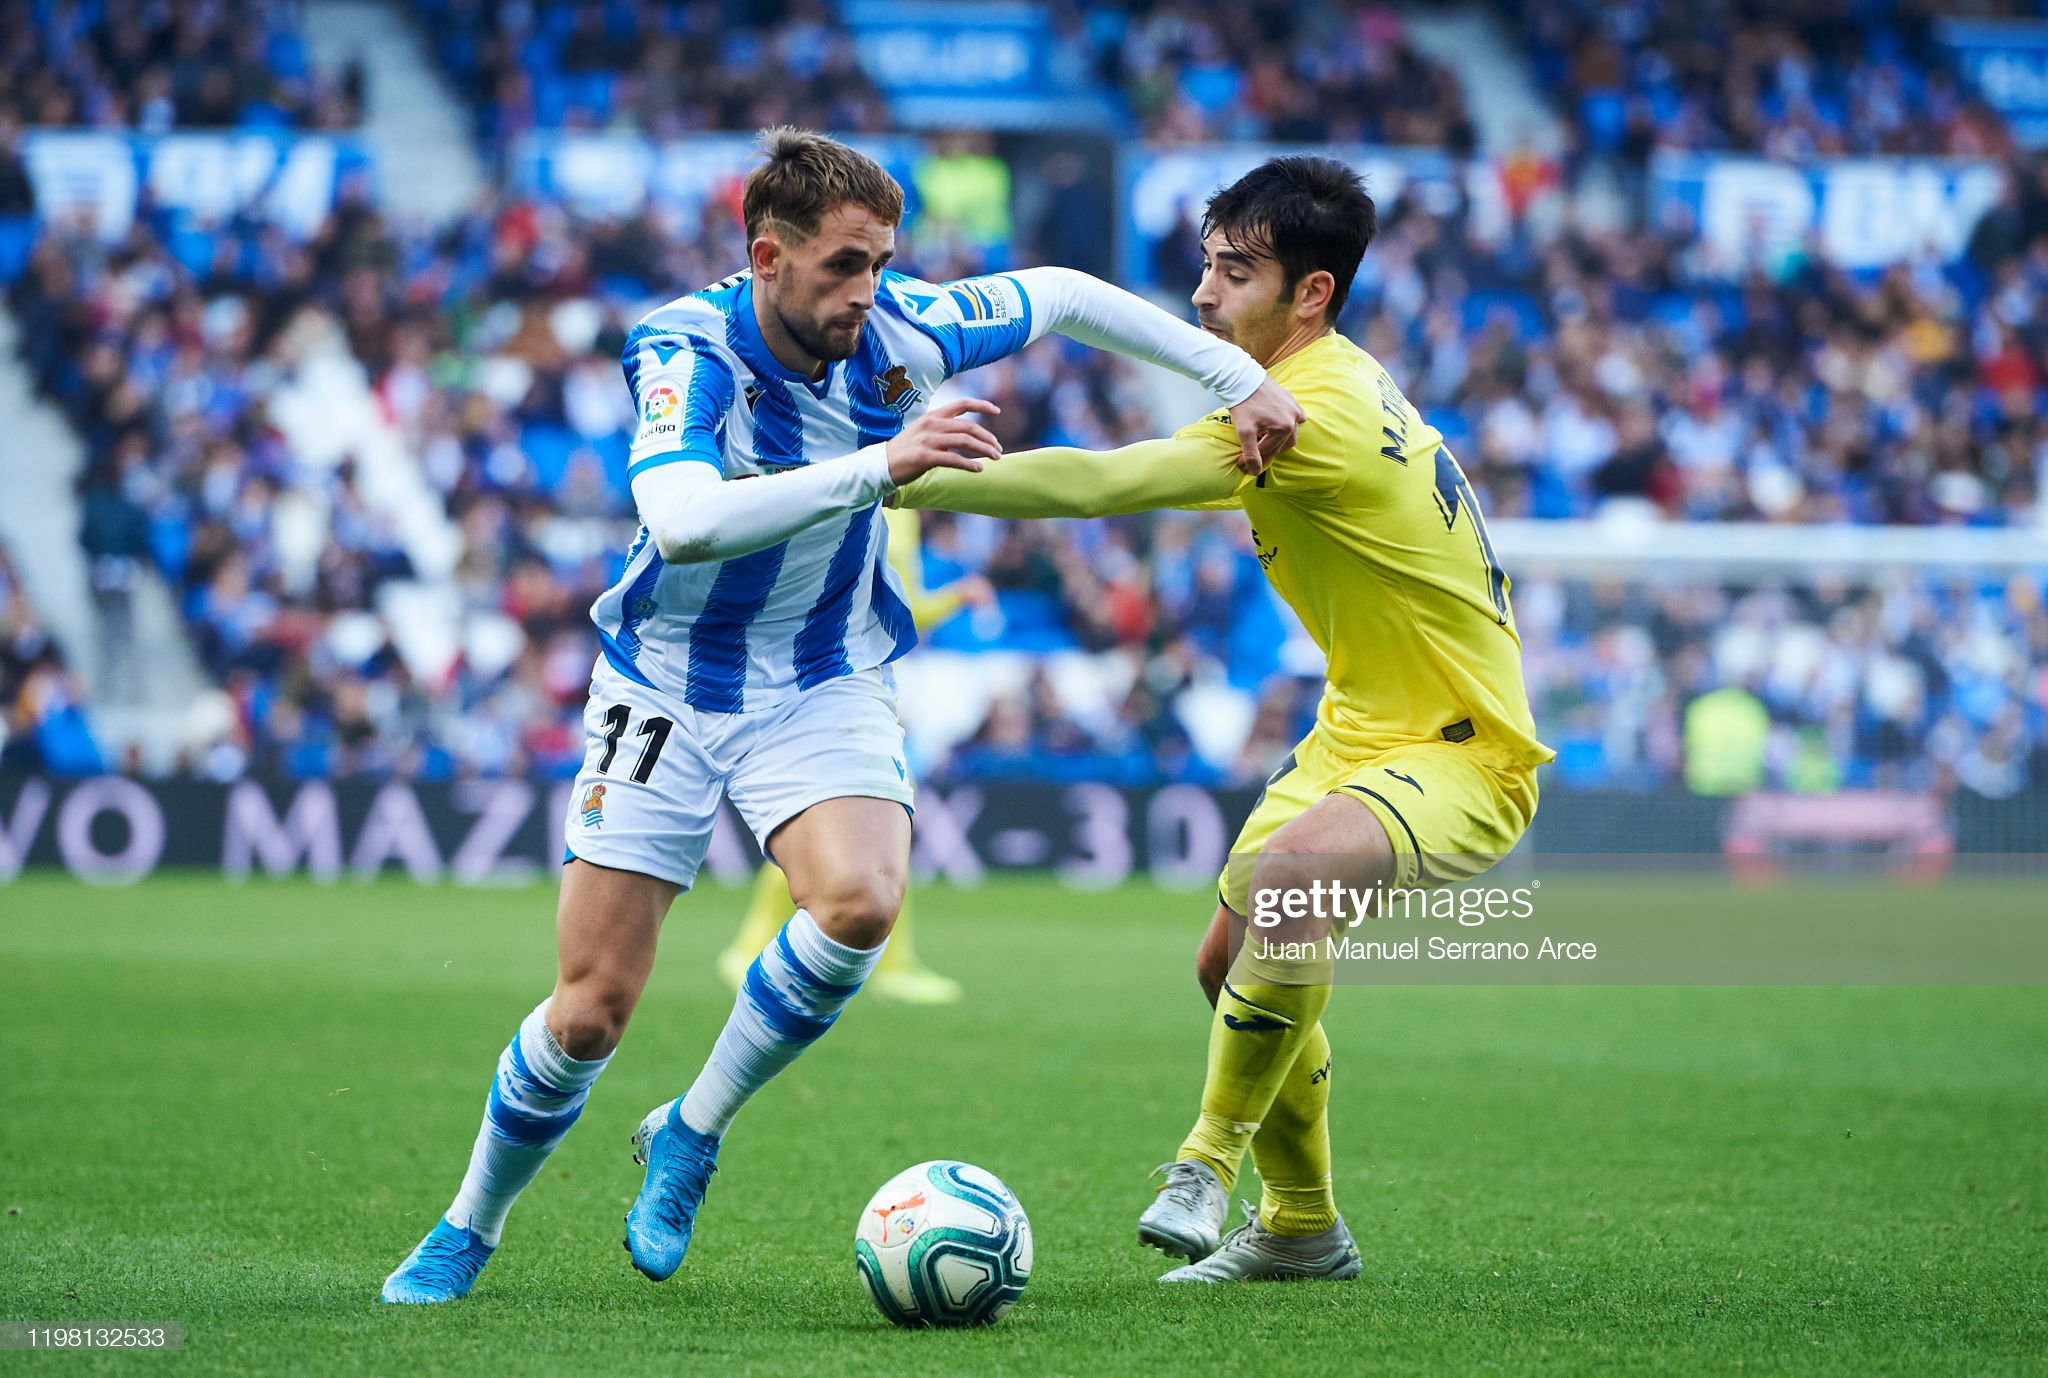 Villarreal vs Real Sociedad Preview, prediction and odds